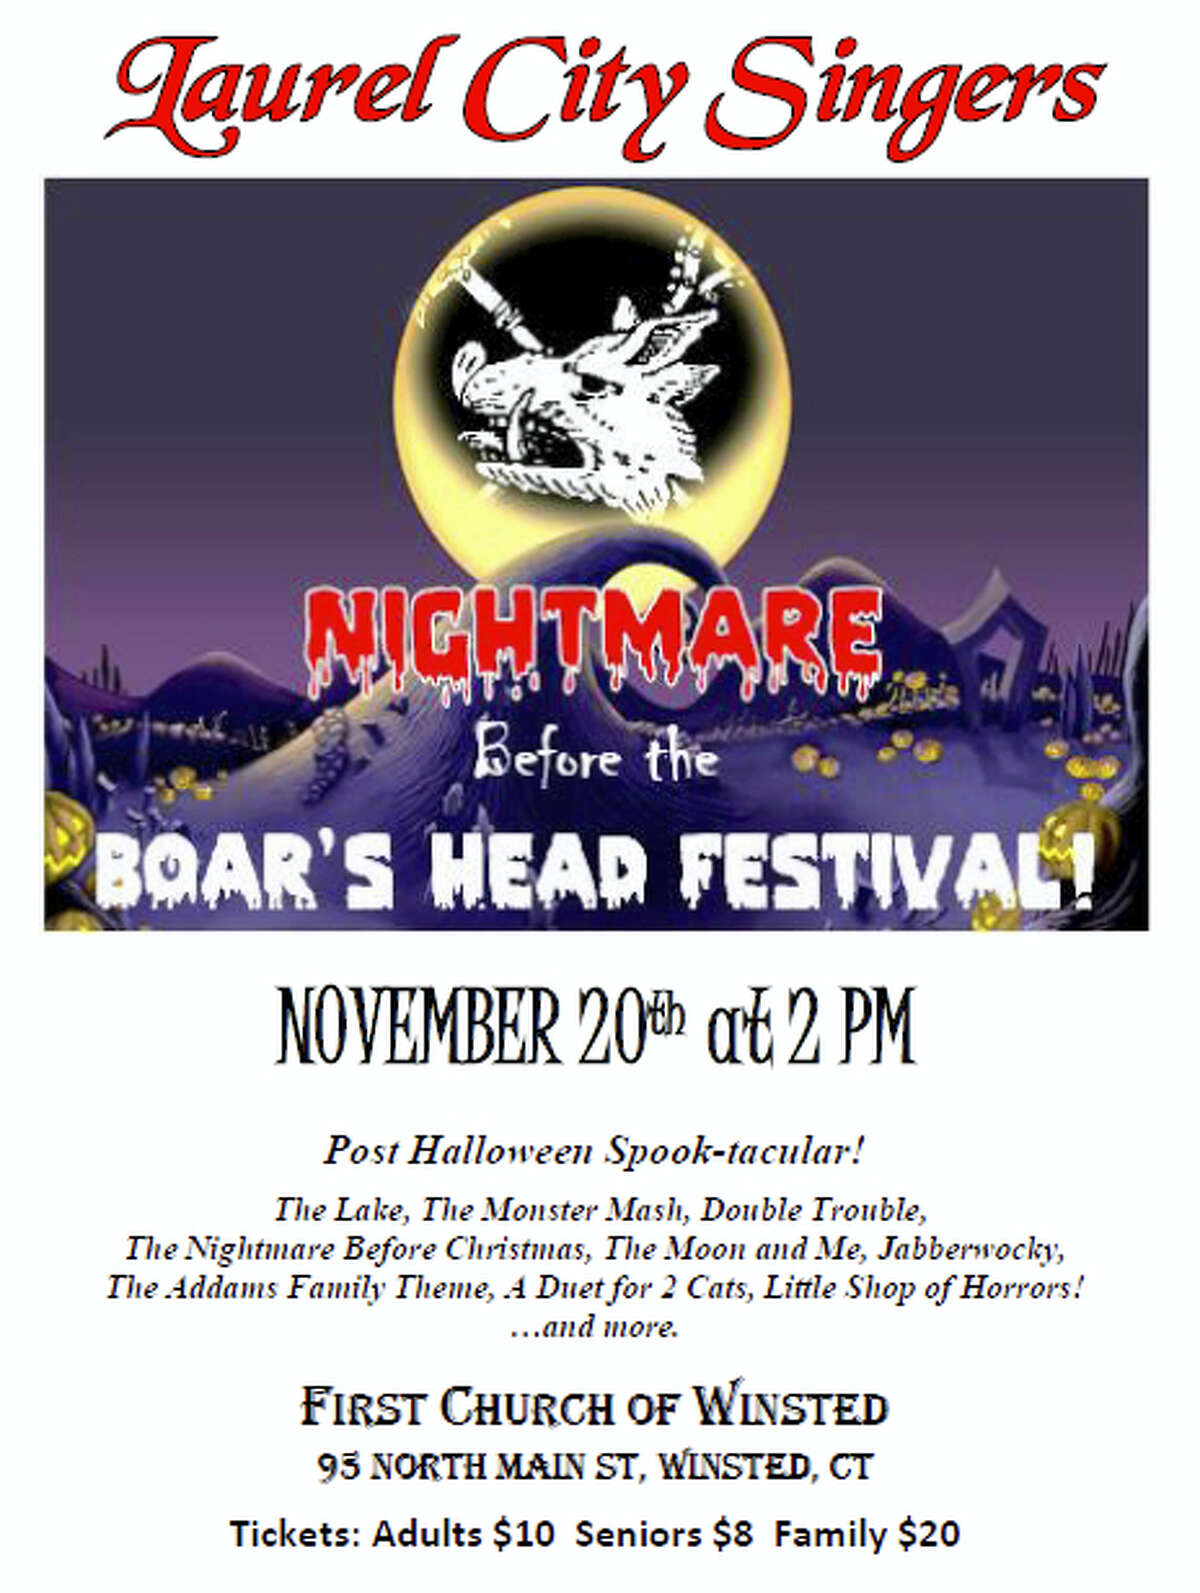 Contributed photoLaurel City Singers are hosting a post Halloween concert on Sunday, Nov. 20 in Winsted.